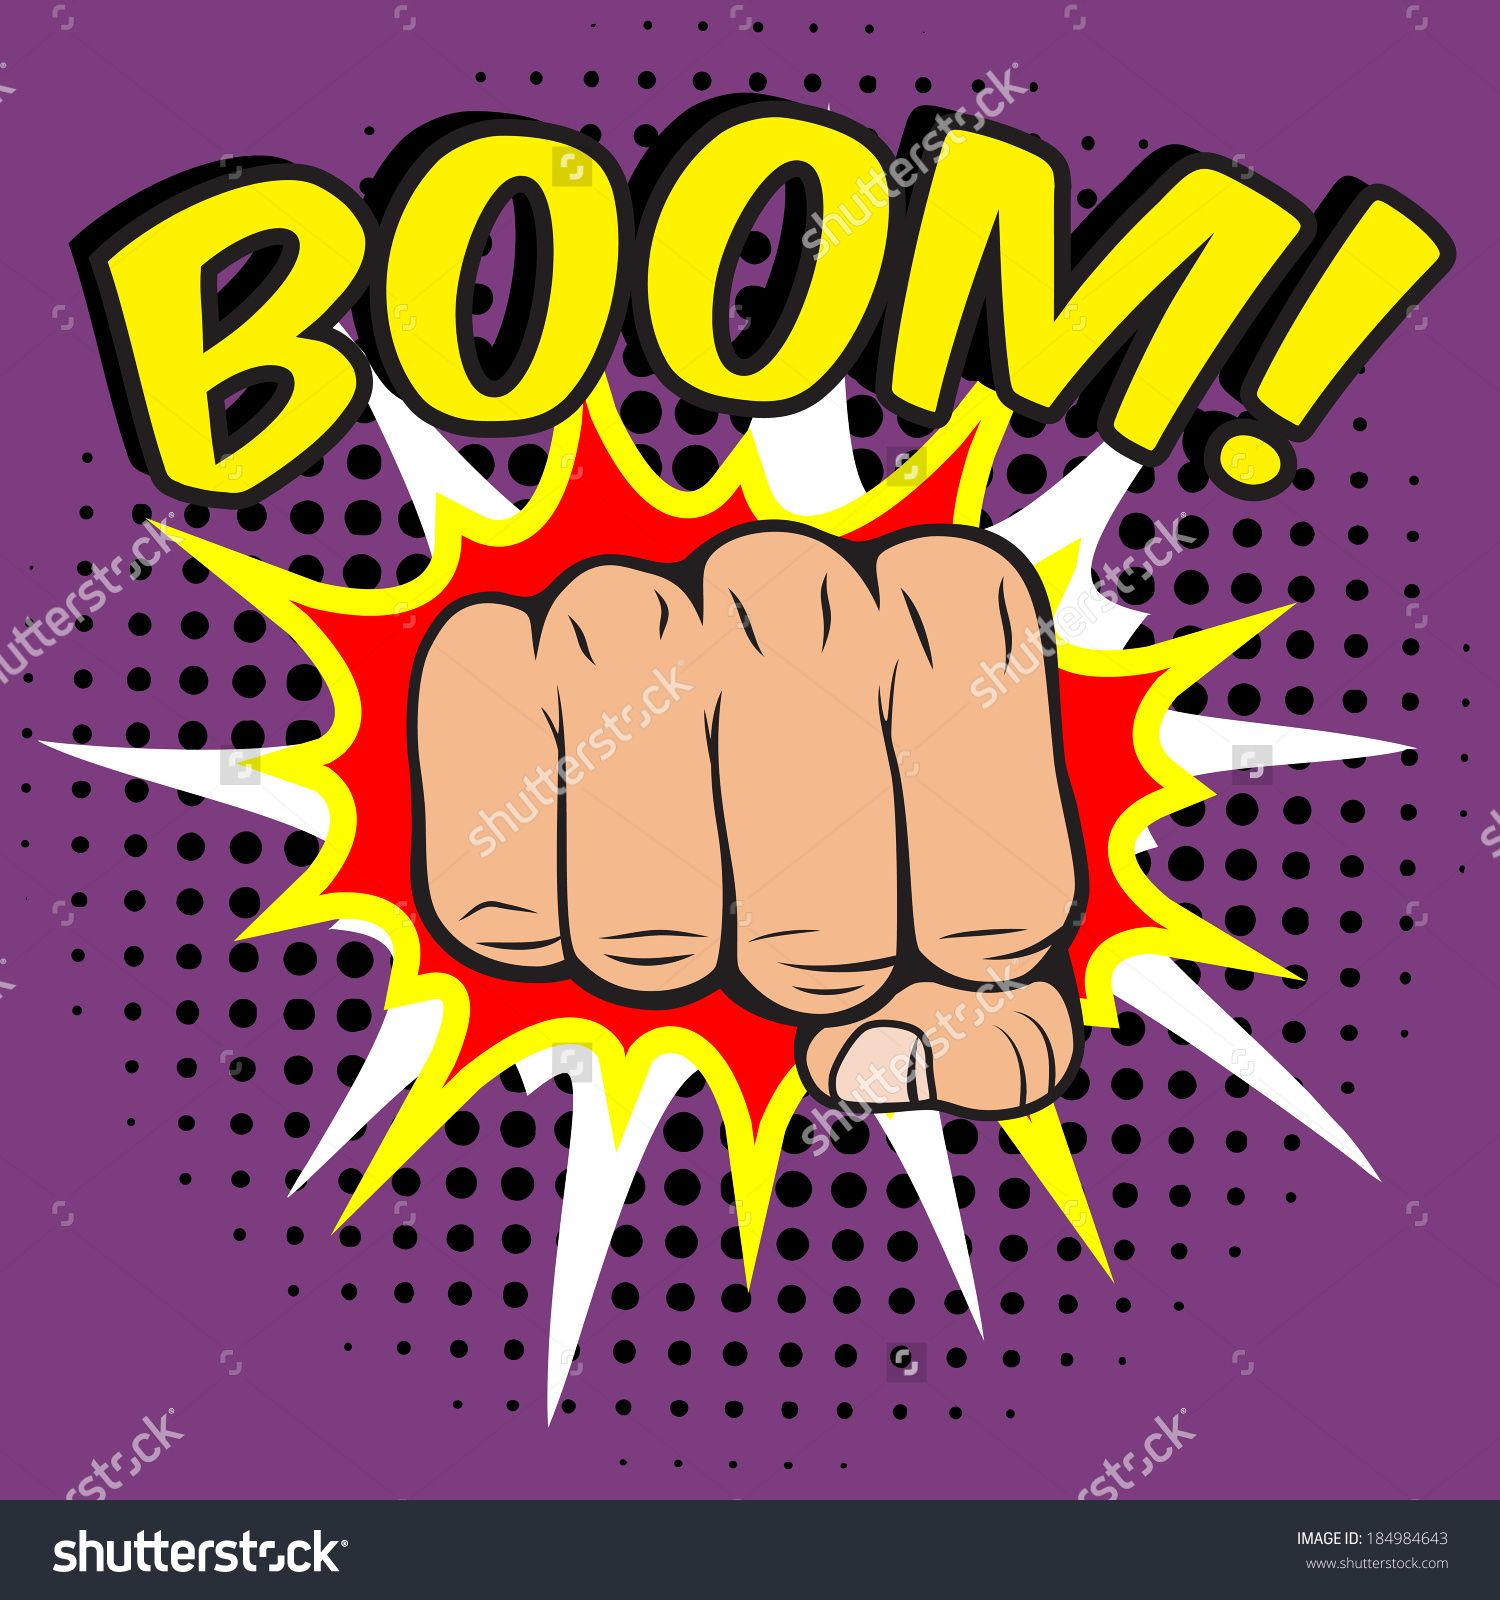 Pop Art Comic Poster With Boom Clenched Hand Fist Power Human Hit ...